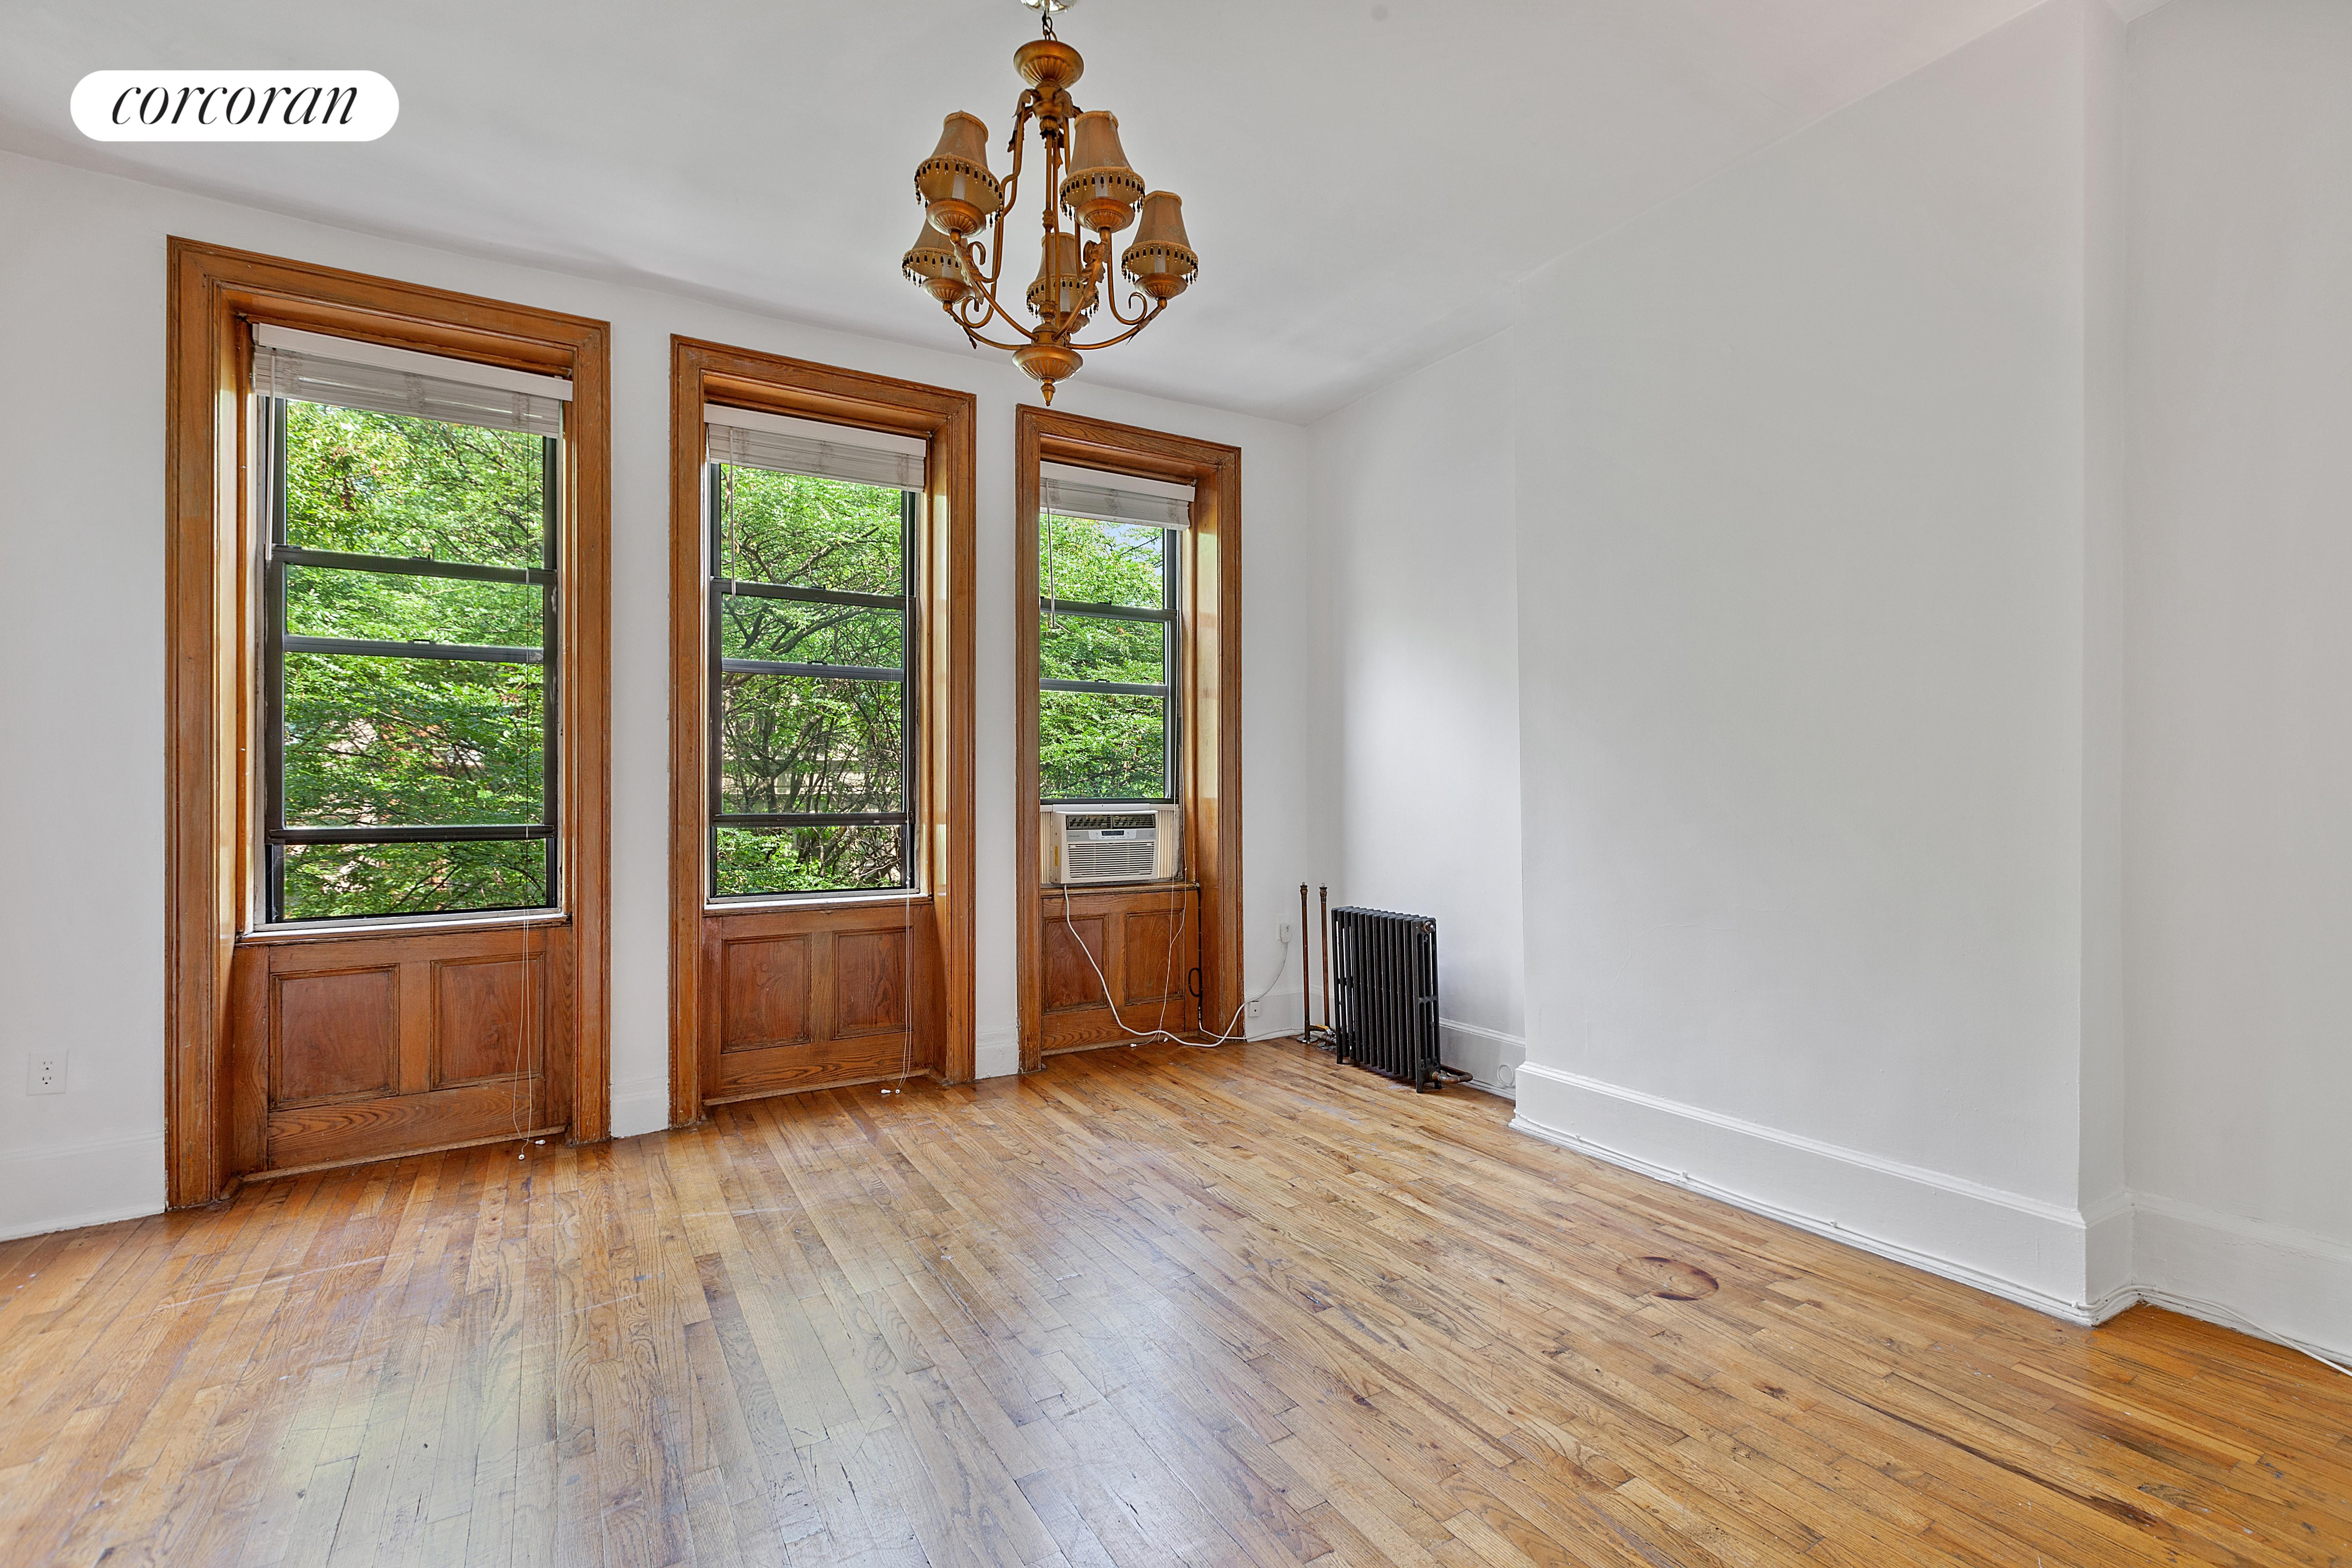 524 West 149th Street, 3, Living Room